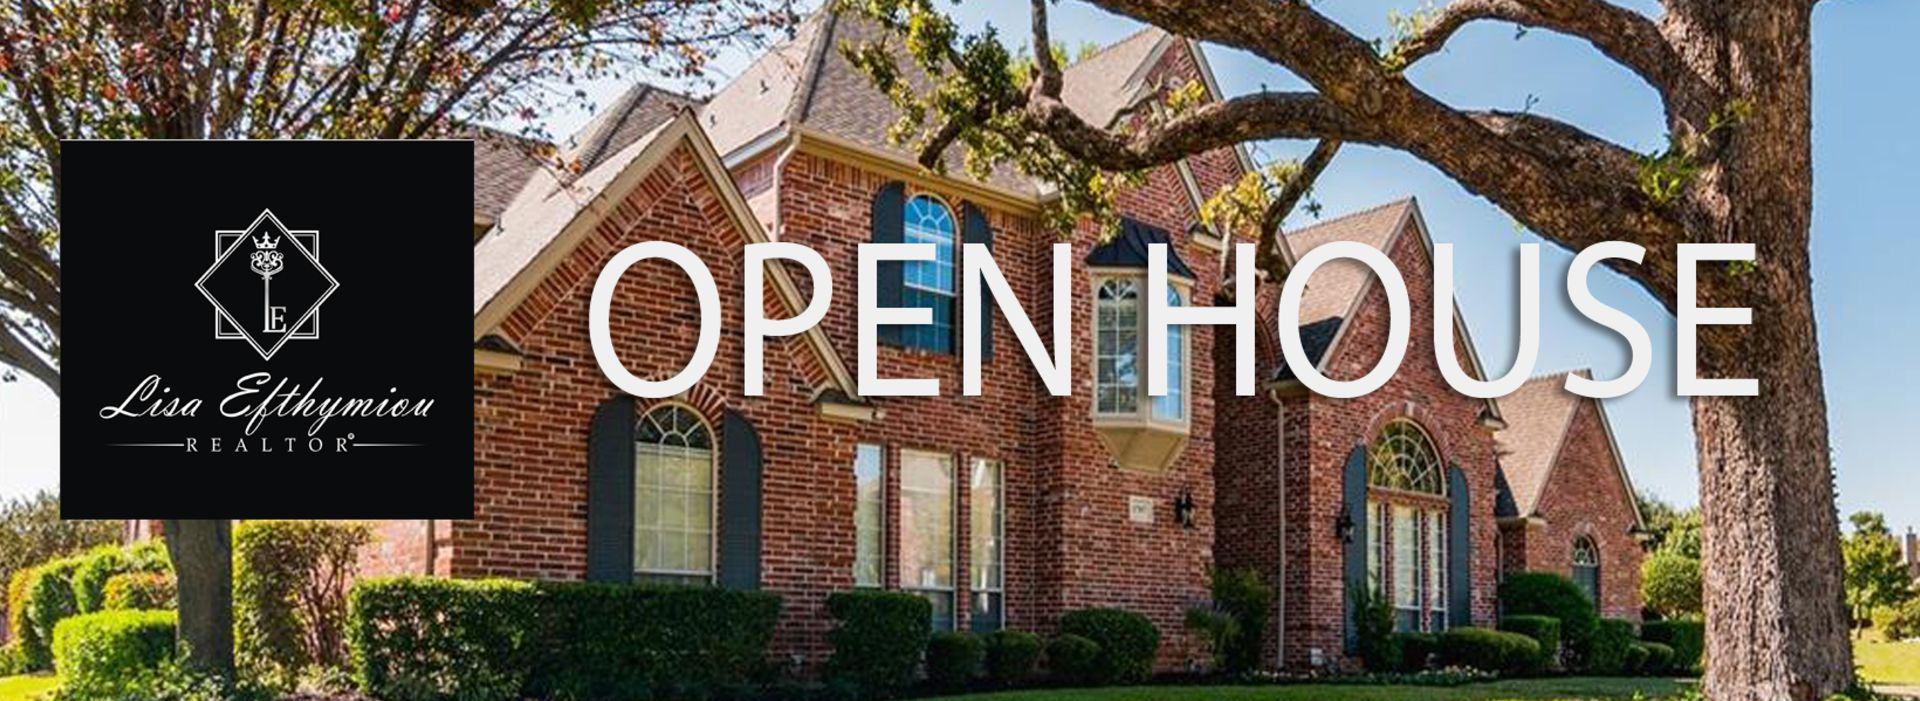 OPEN HOUSE THIS SATURDAY:  3-5pm at 1707 Pecos Drive in Southlake